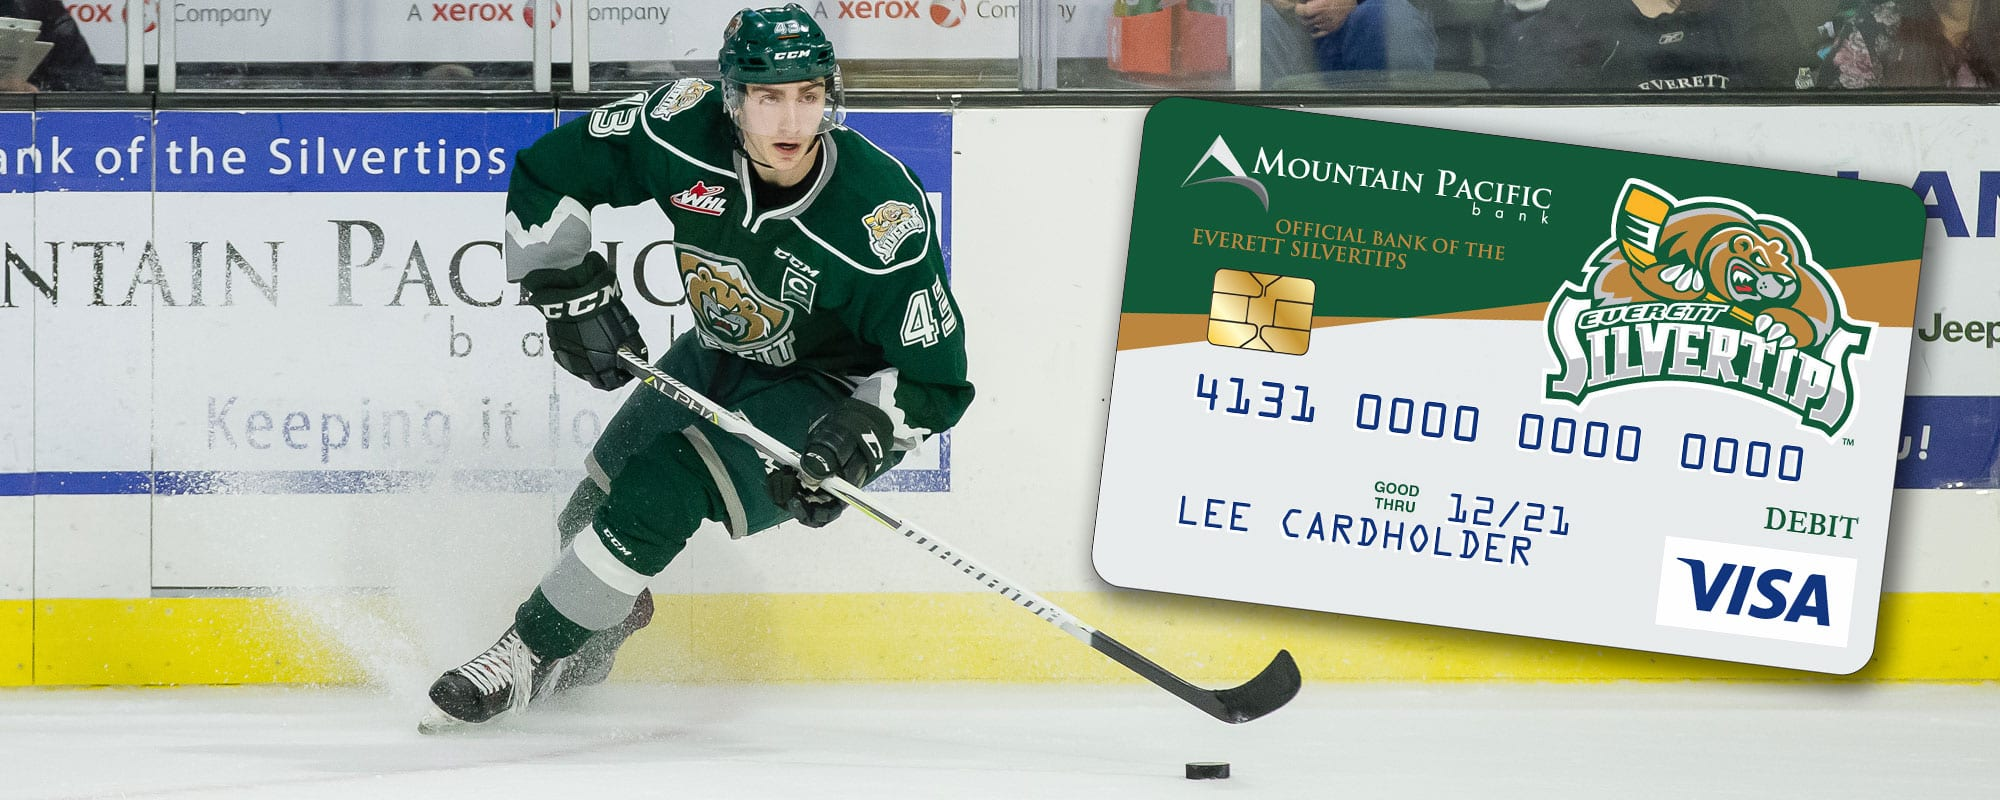 Silvertips Debit Card over picture of Silvertips Hockey Player skating with puck